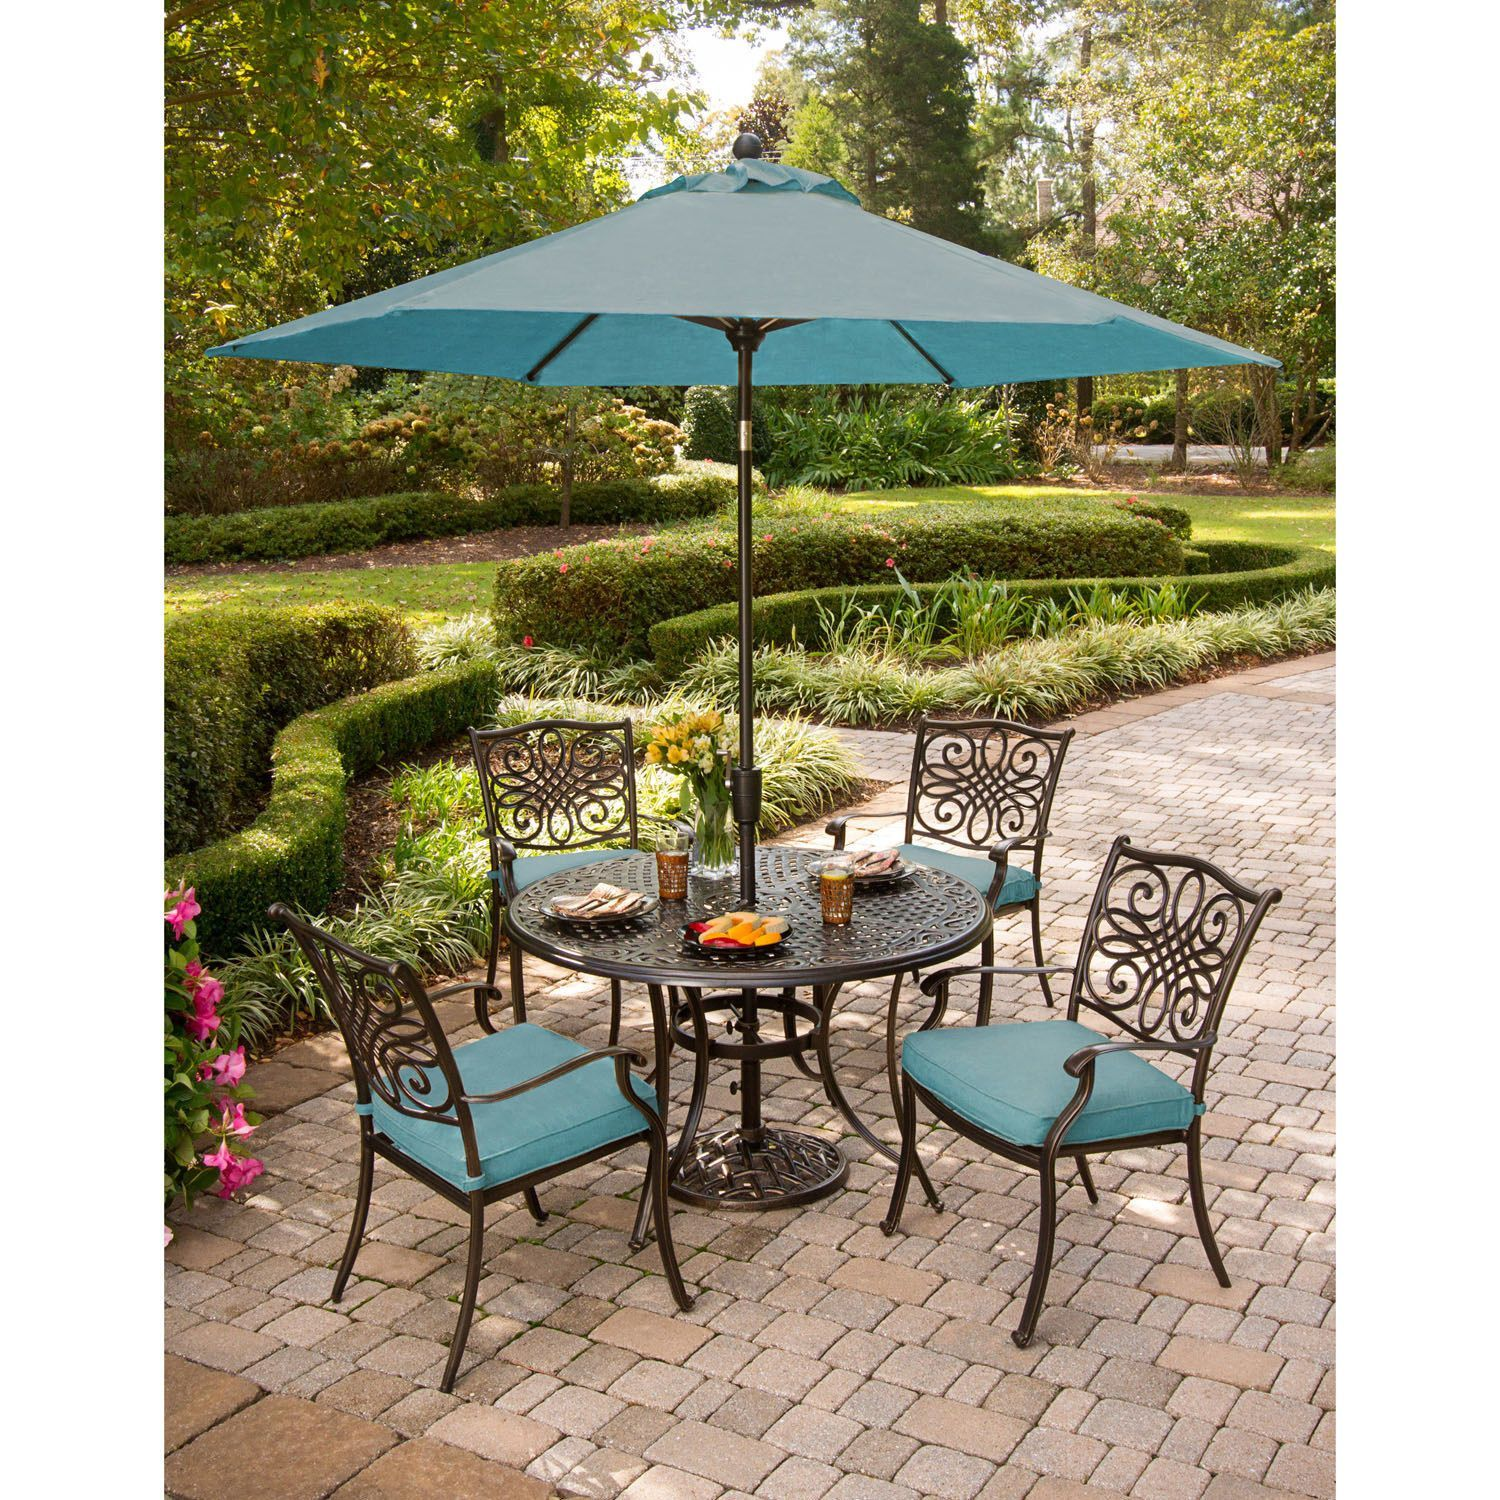 Cambridge Seasons 5 Piece Dining Set With Table Umbrella And Stand Blue Size Sets Patio Furniture Aluminum